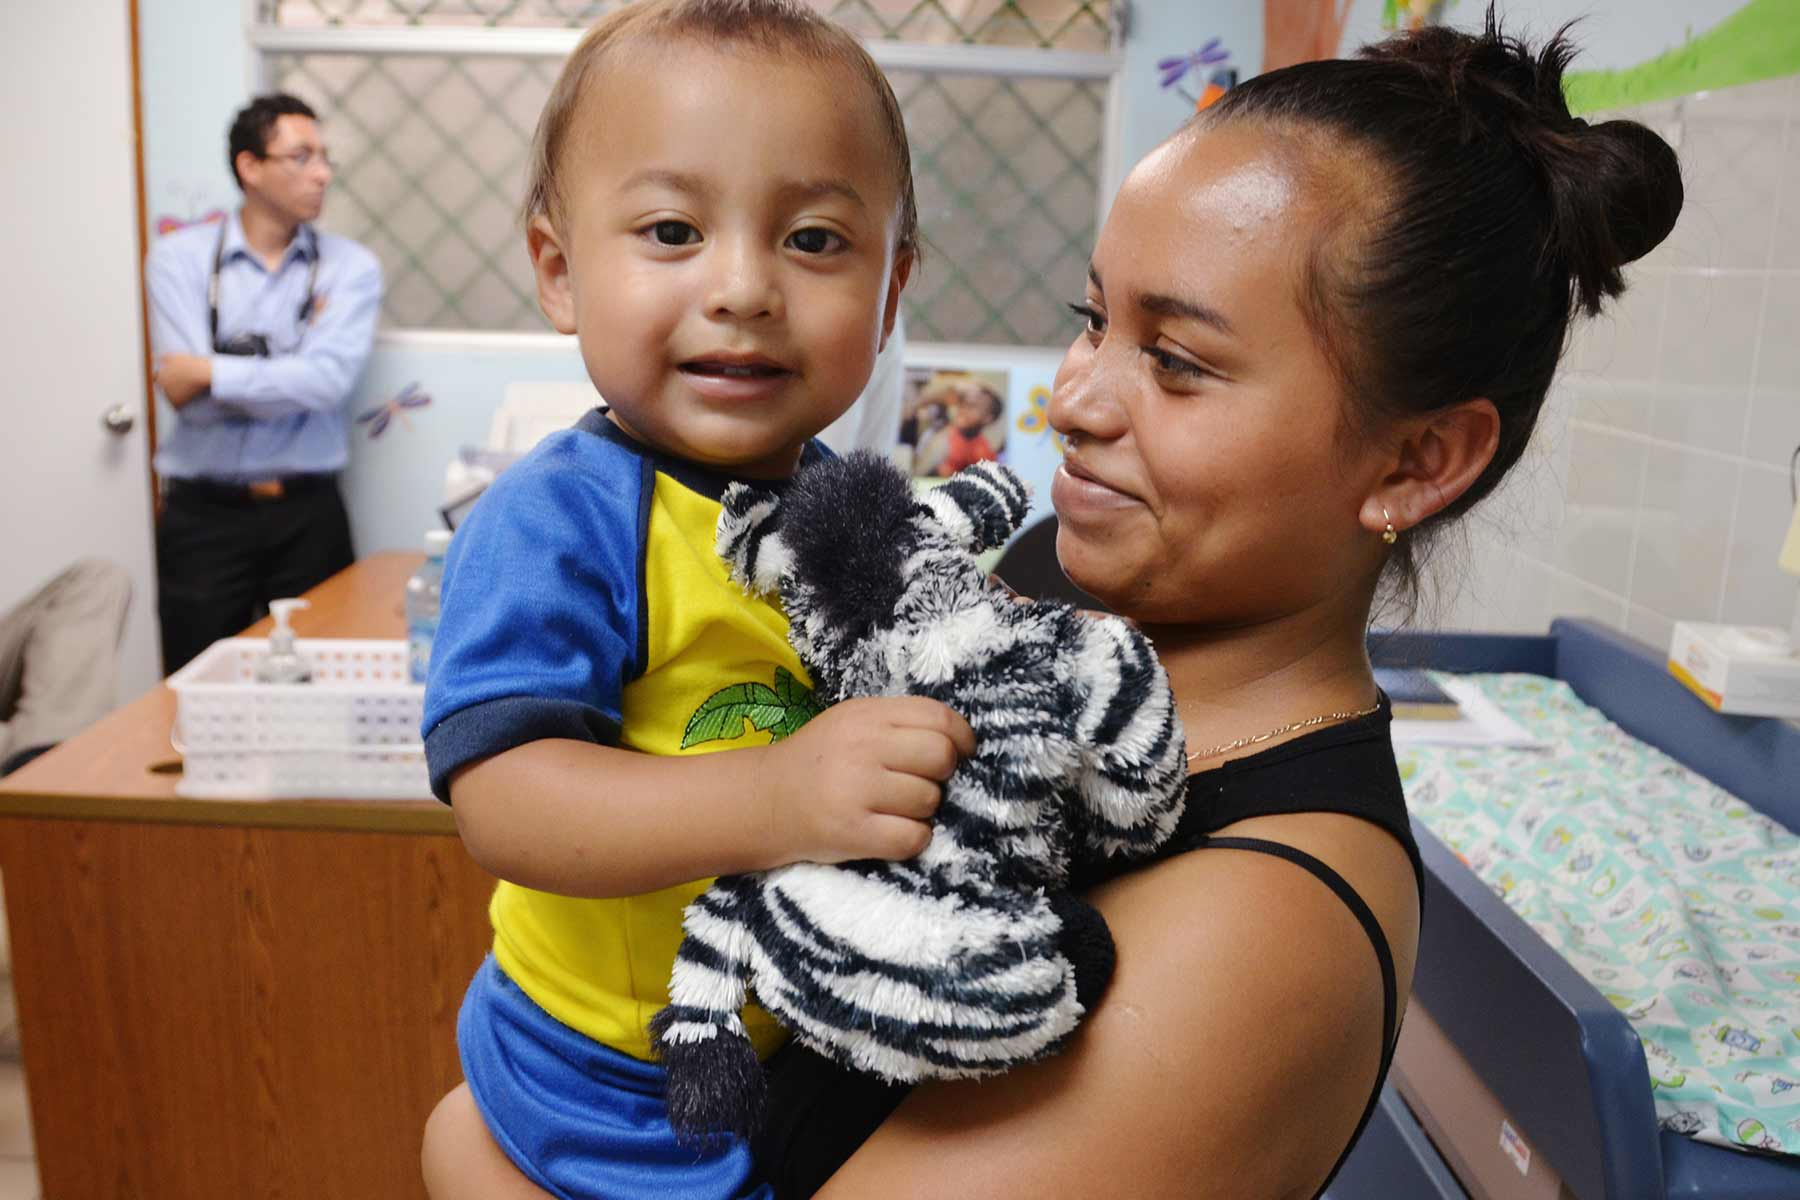 Mother and child at the El Salvador clinic